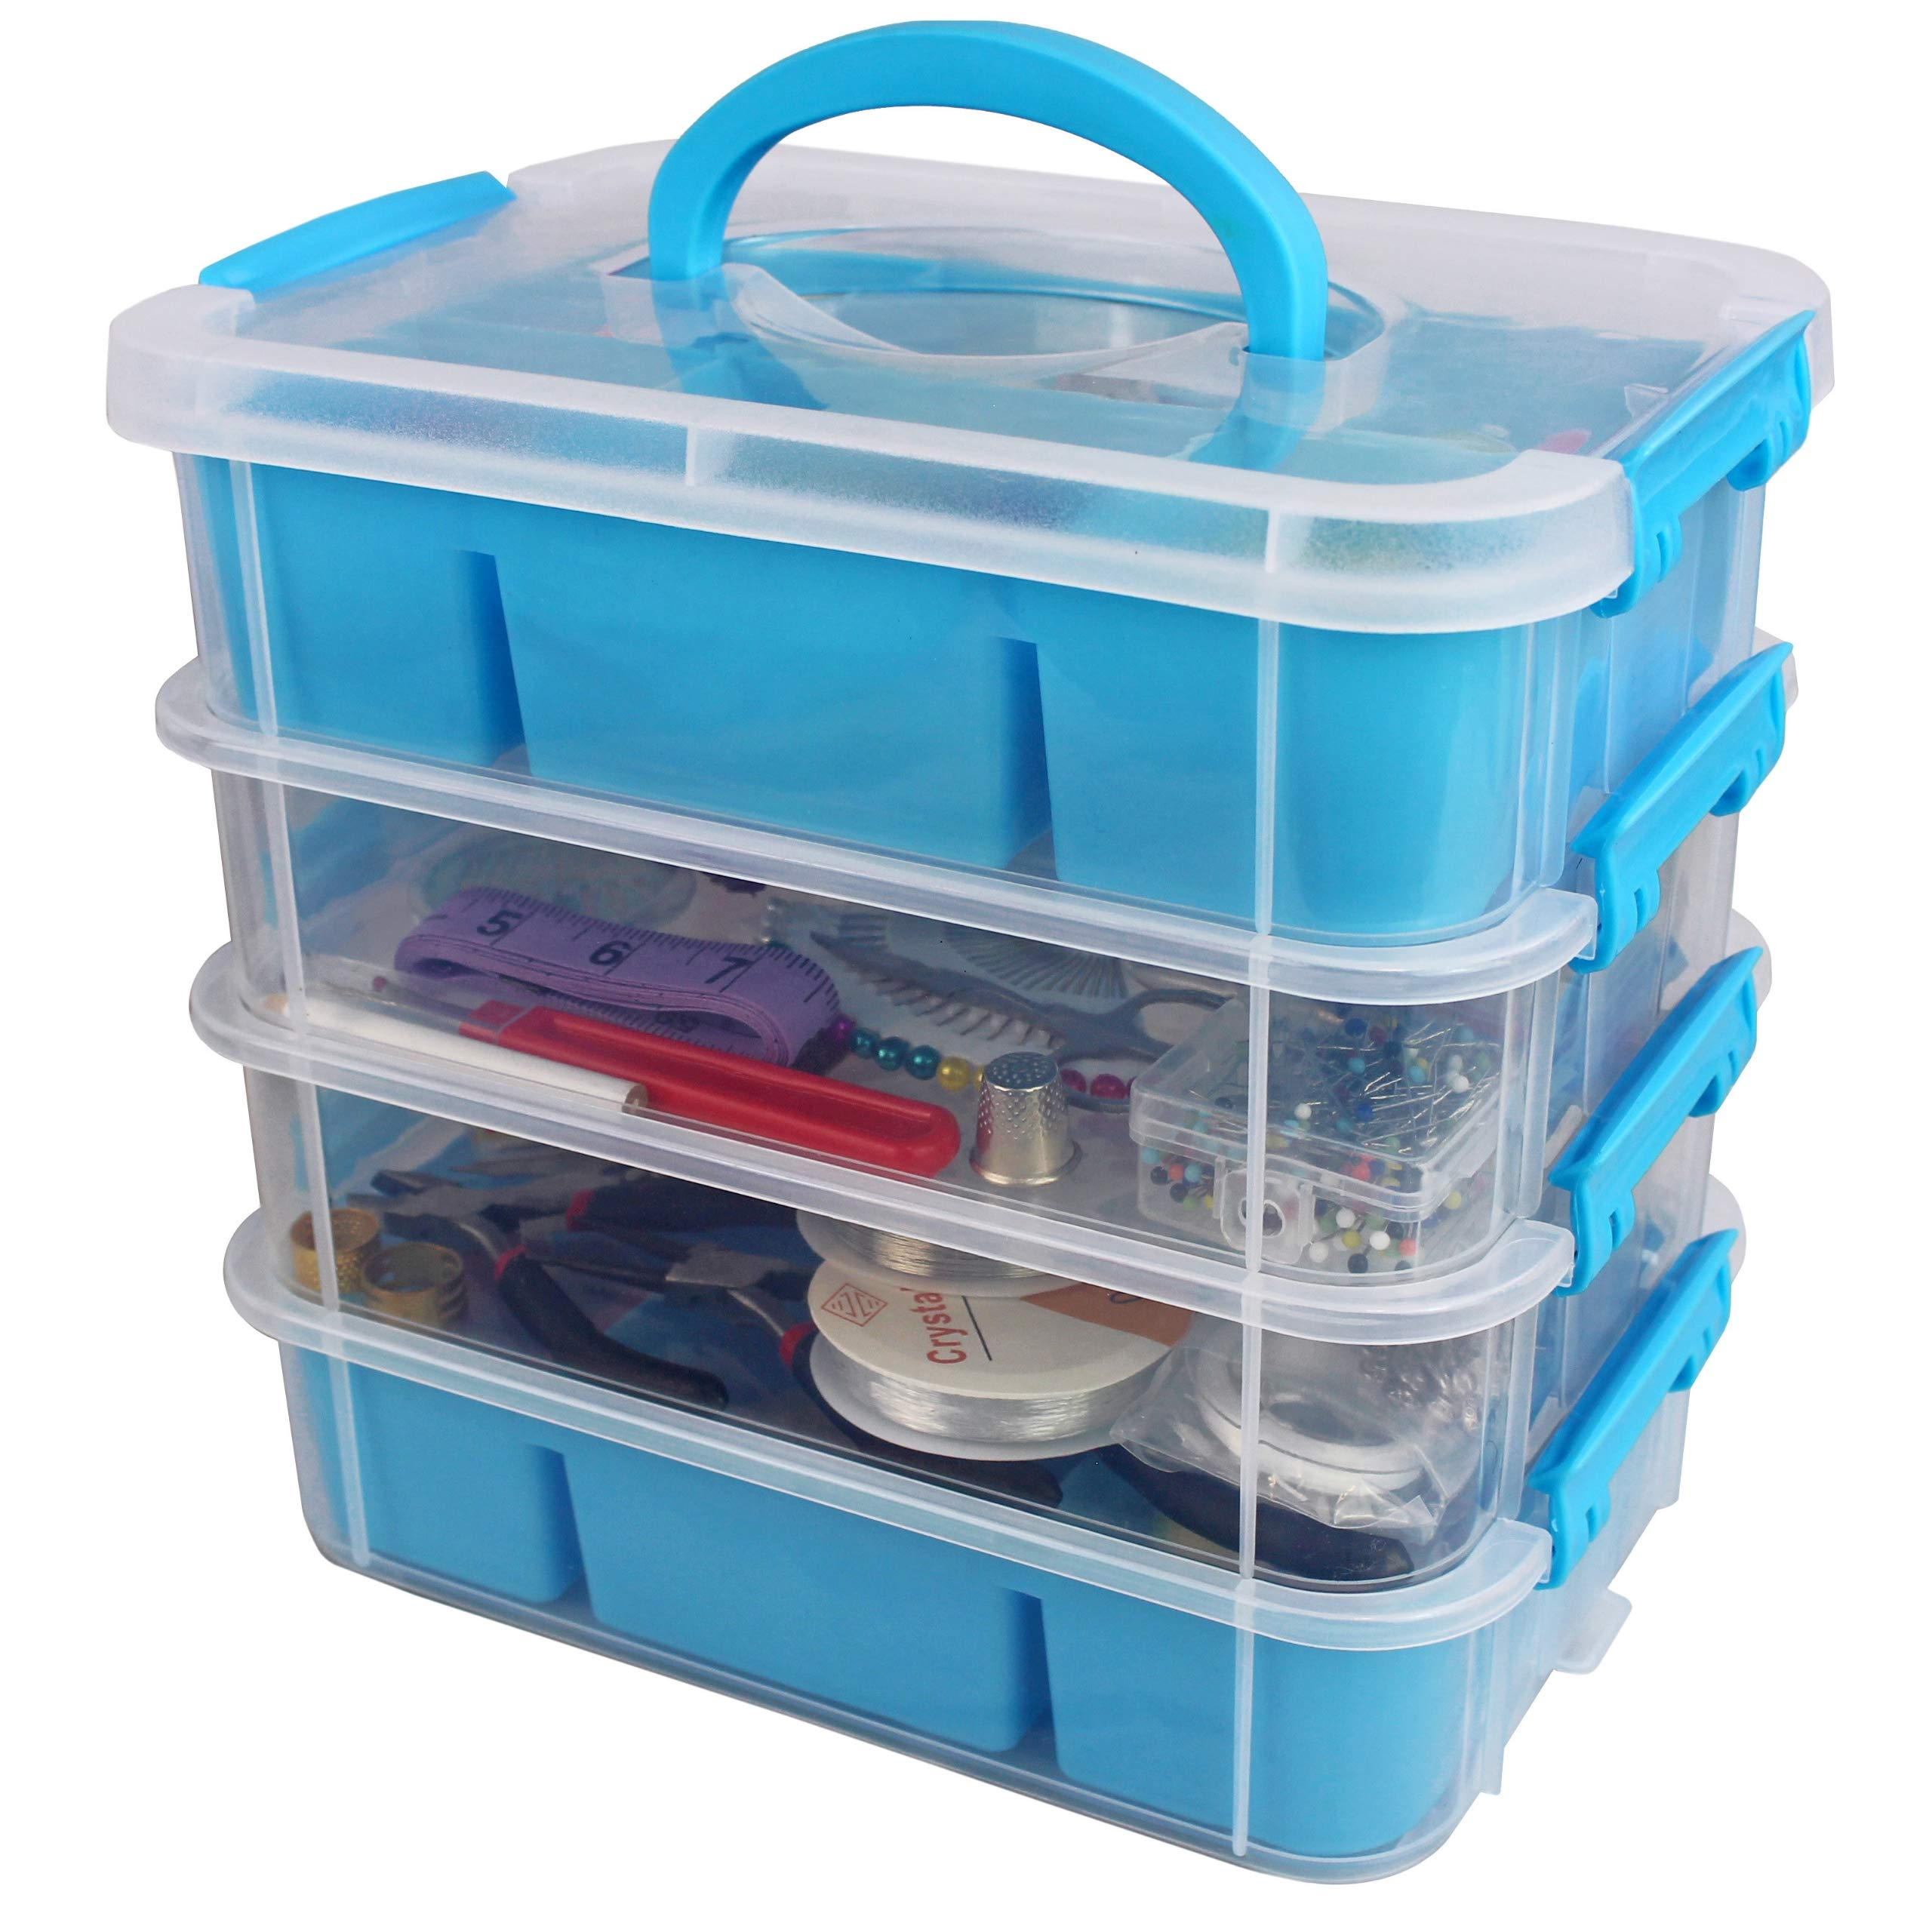 4-STACKING STORAGE CASES WITH 2 TRAYS & LID